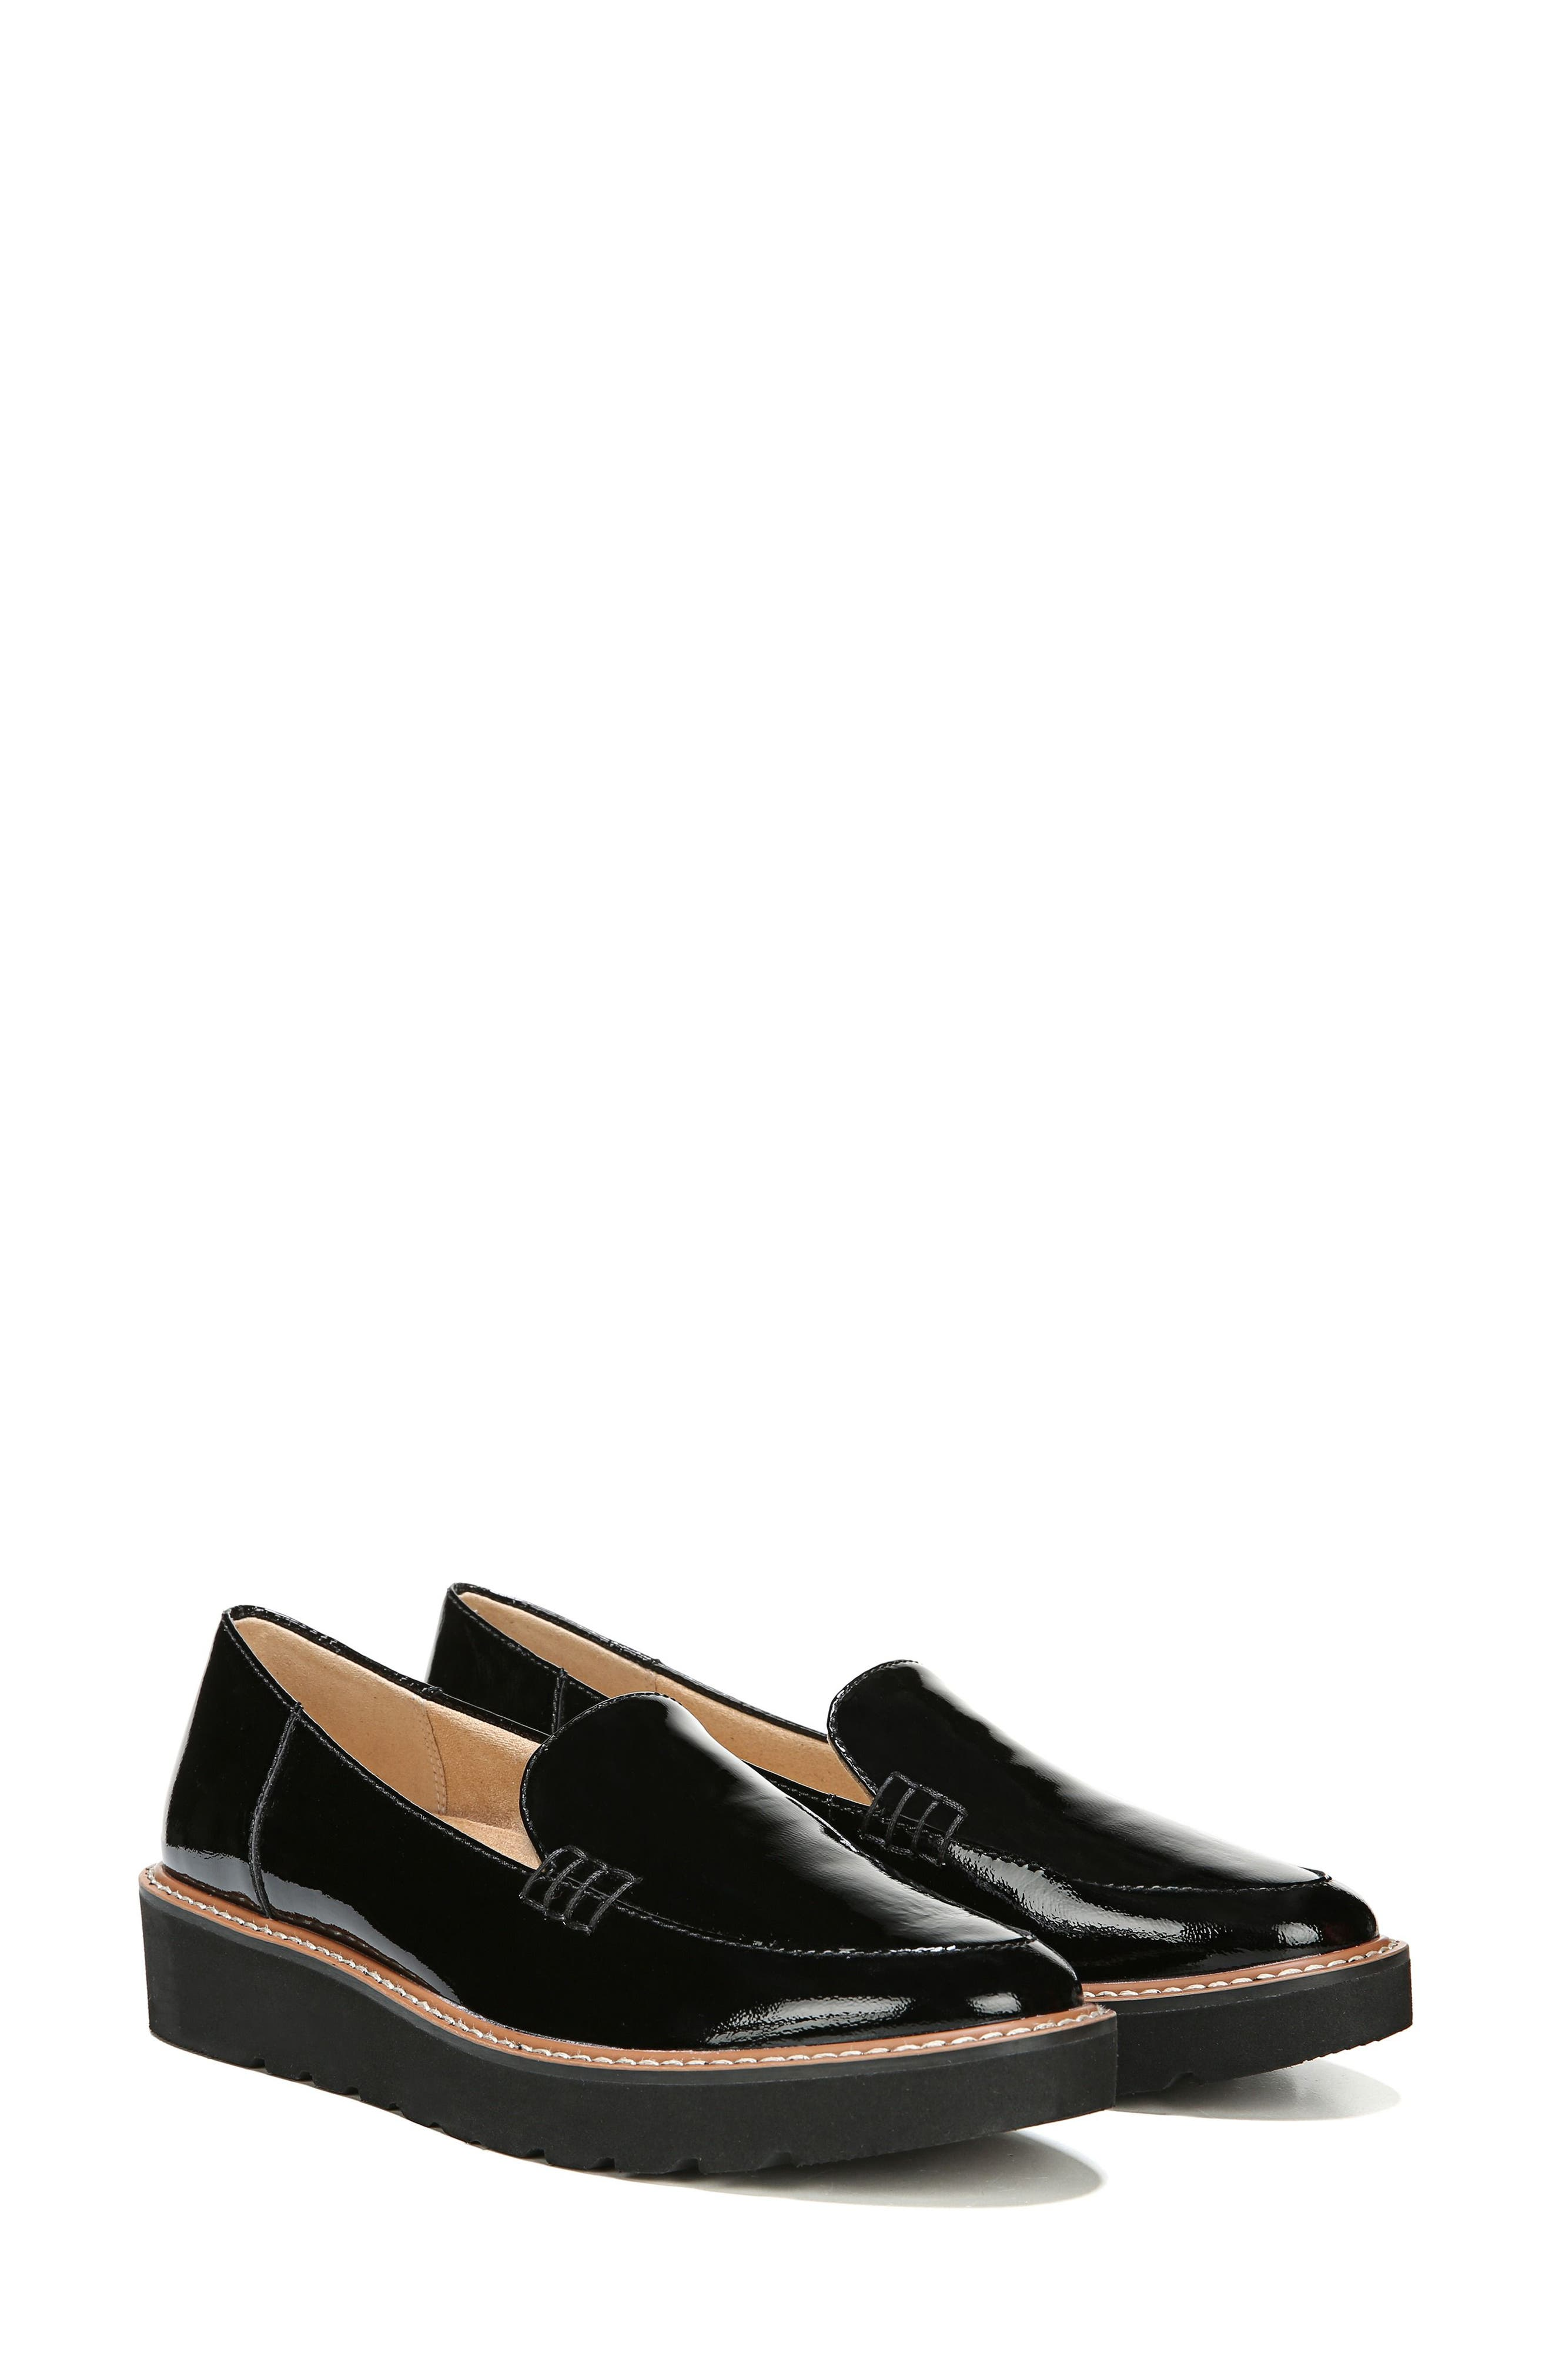 Andie Loafer,                             Alternate thumbnail 8, color,                             BLACK PATENT